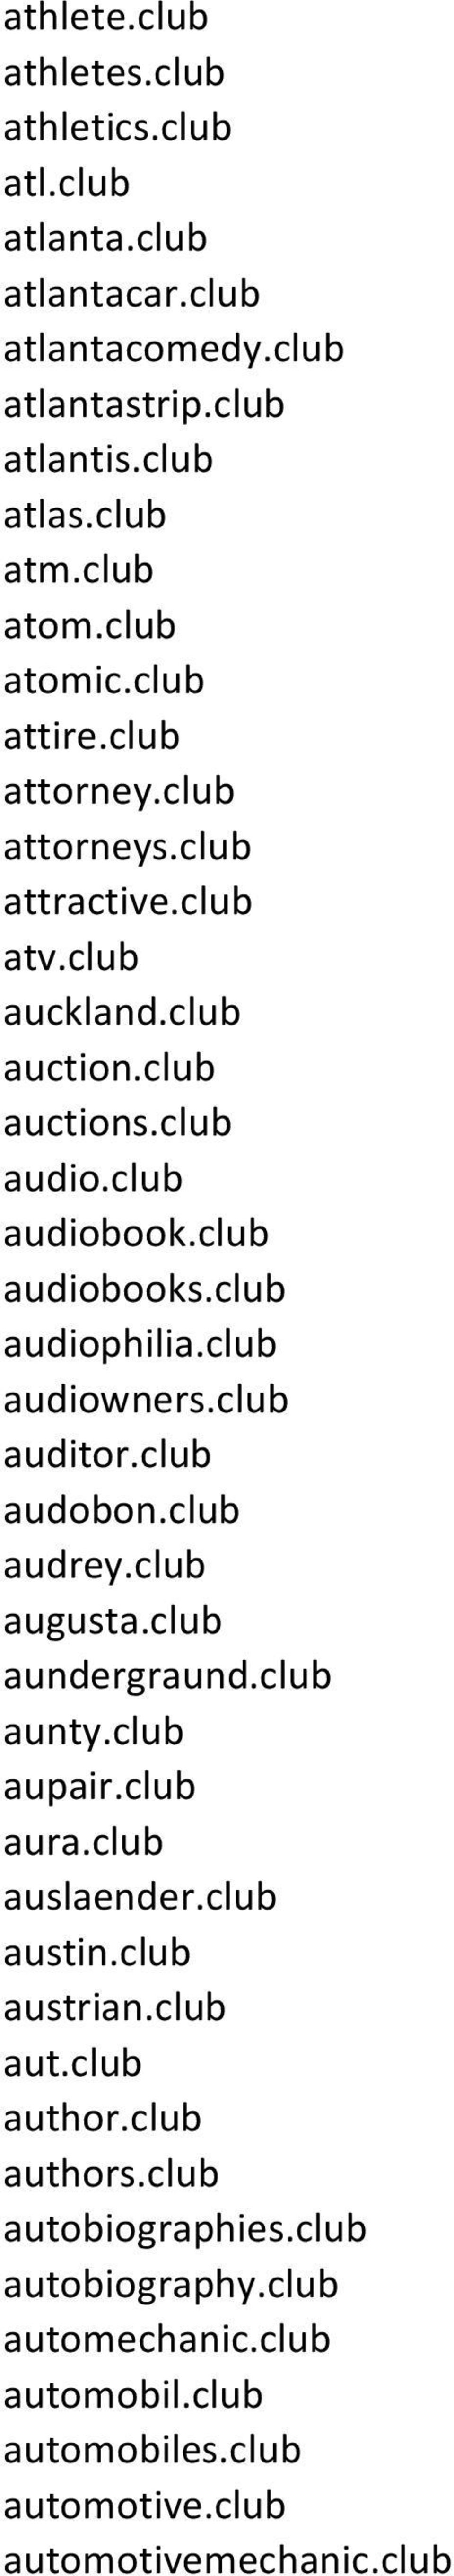 club audiophilia.club audiowners.club auditor.club audobon.club audrey.club augusta.club aundergraund.club aunty.club aupair.club aura.club auslaender.club austin.